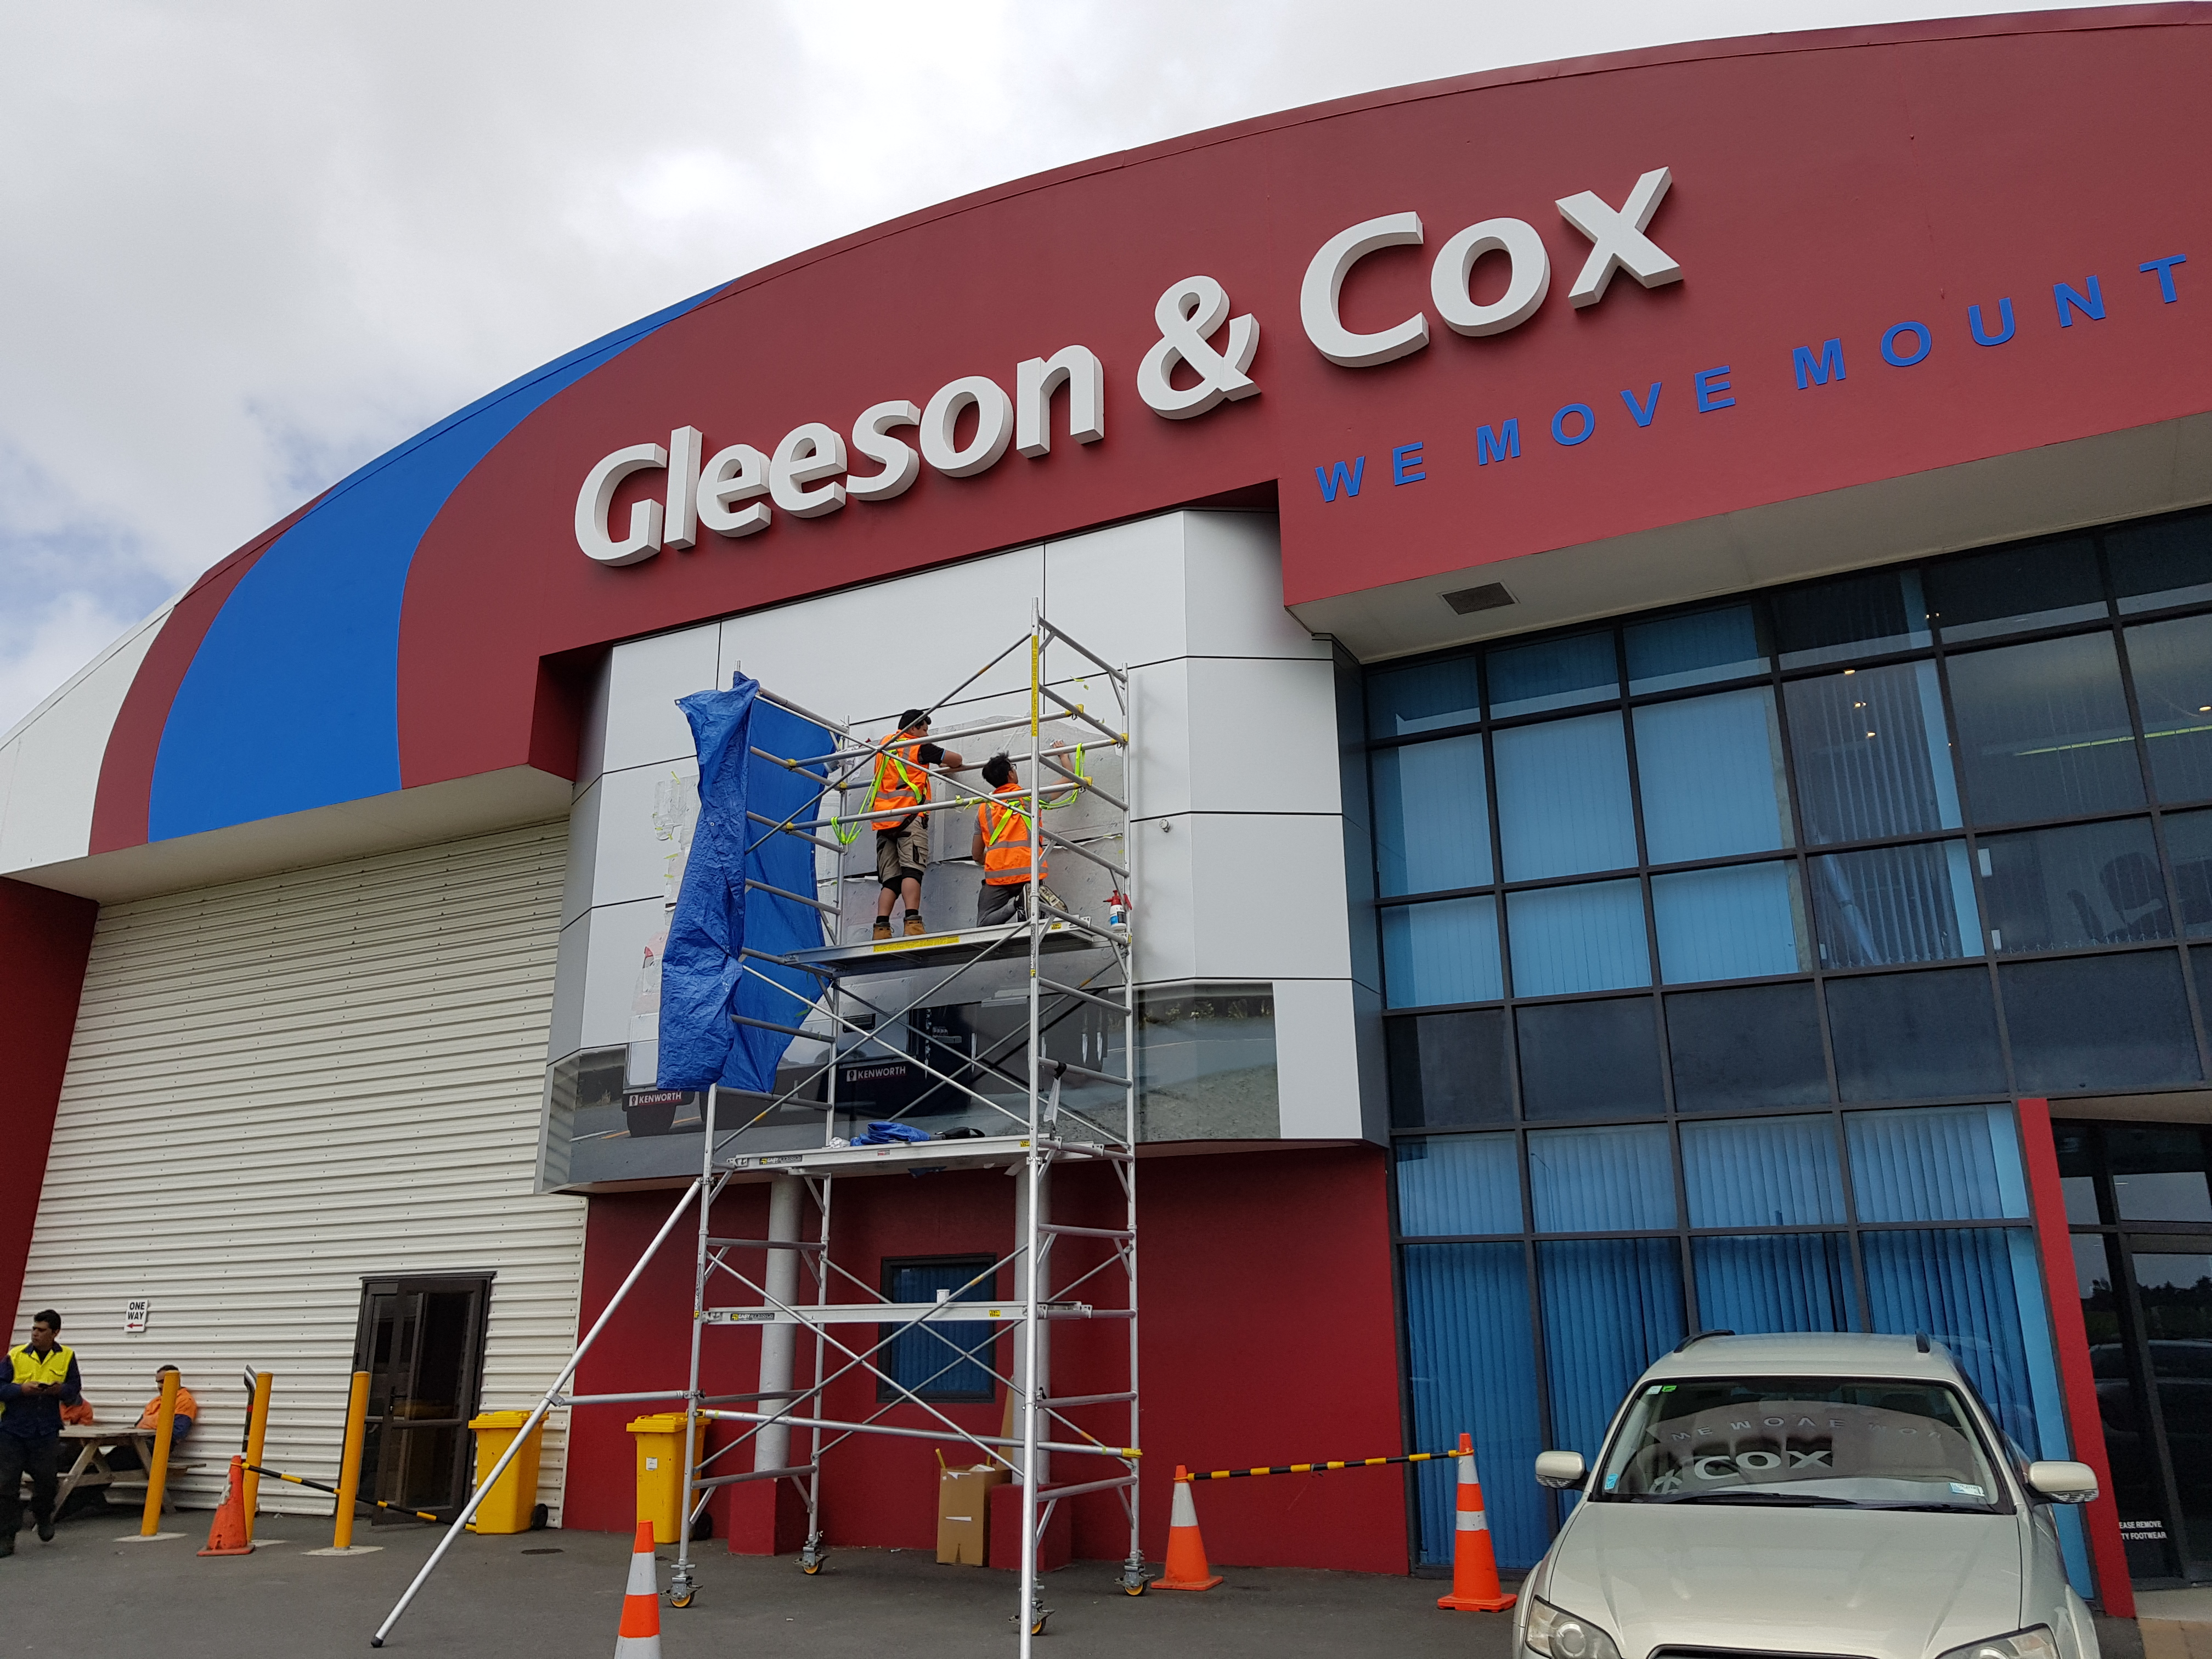 Onform Signs Gleeson & Cox Building Signage 3